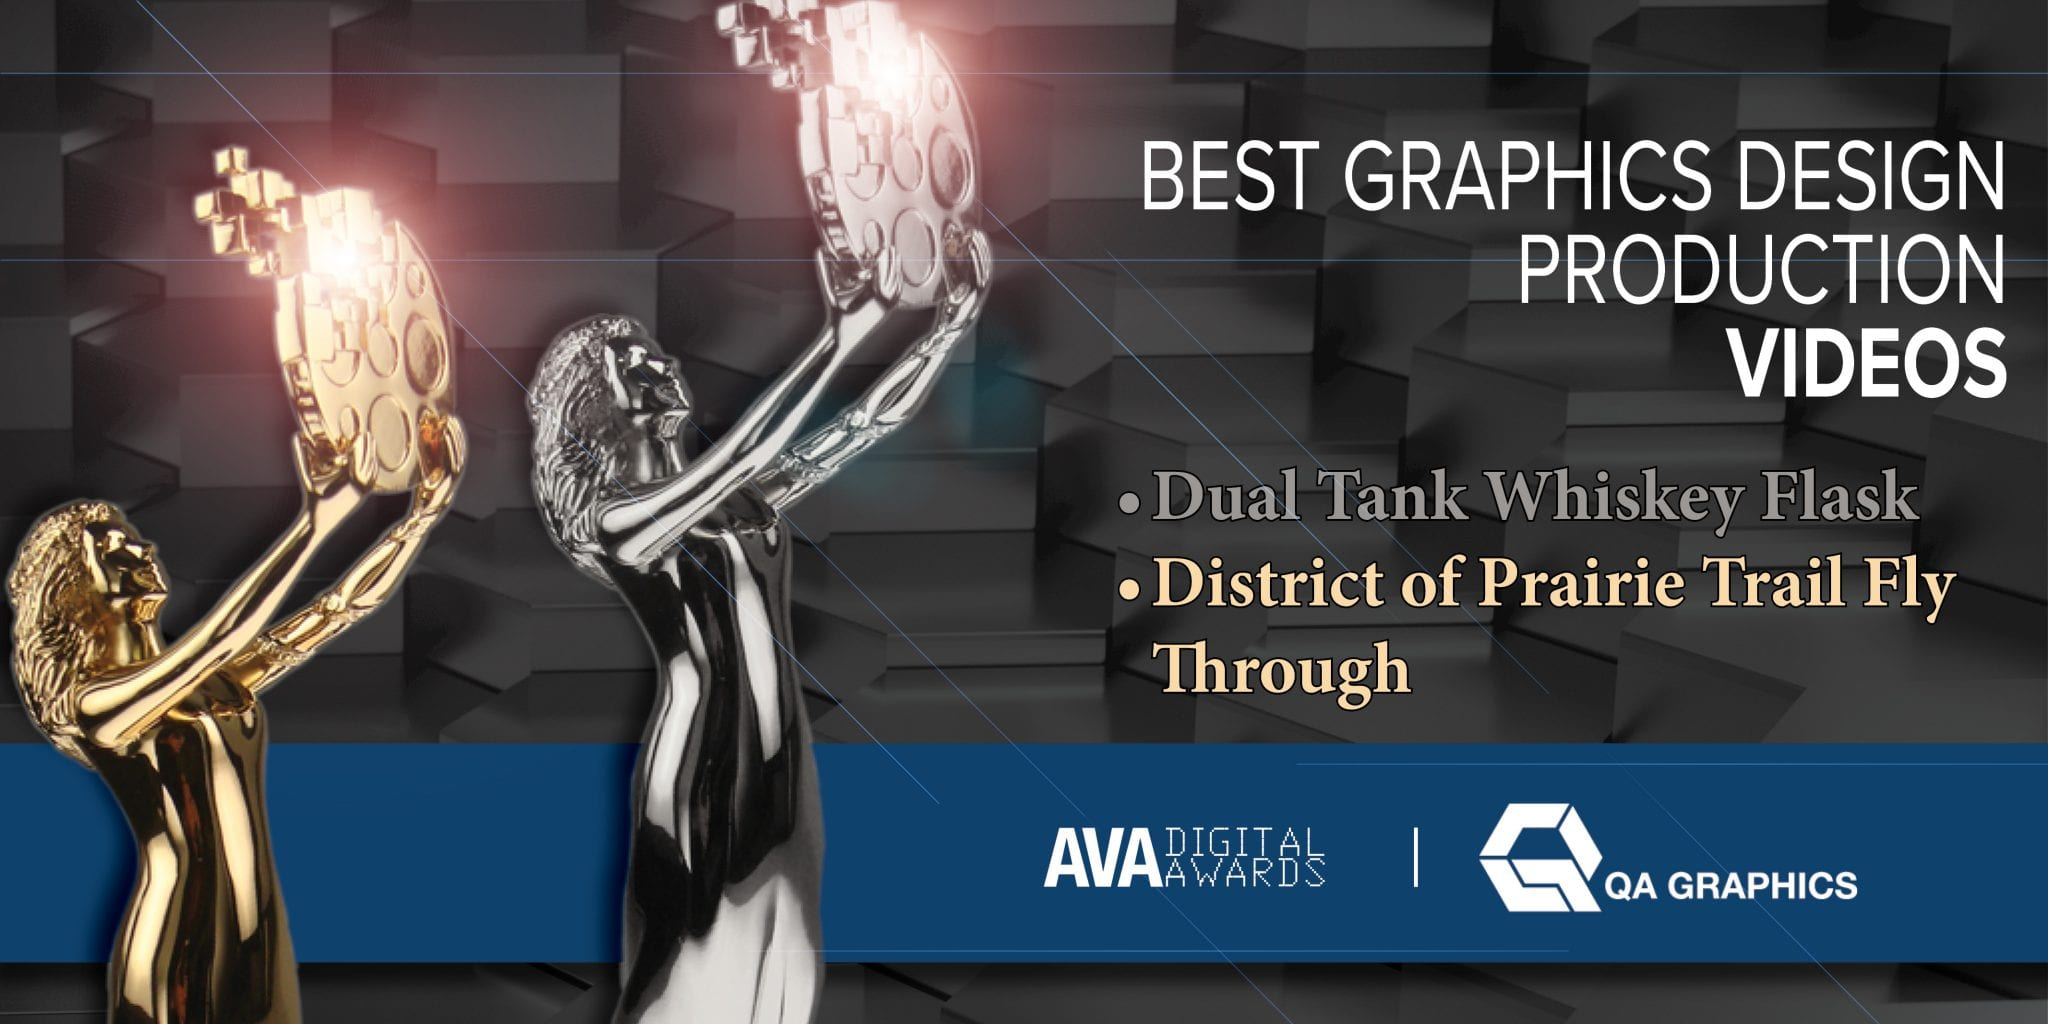 Two Statues on a banner for QA Graphics and their AVA Award wins